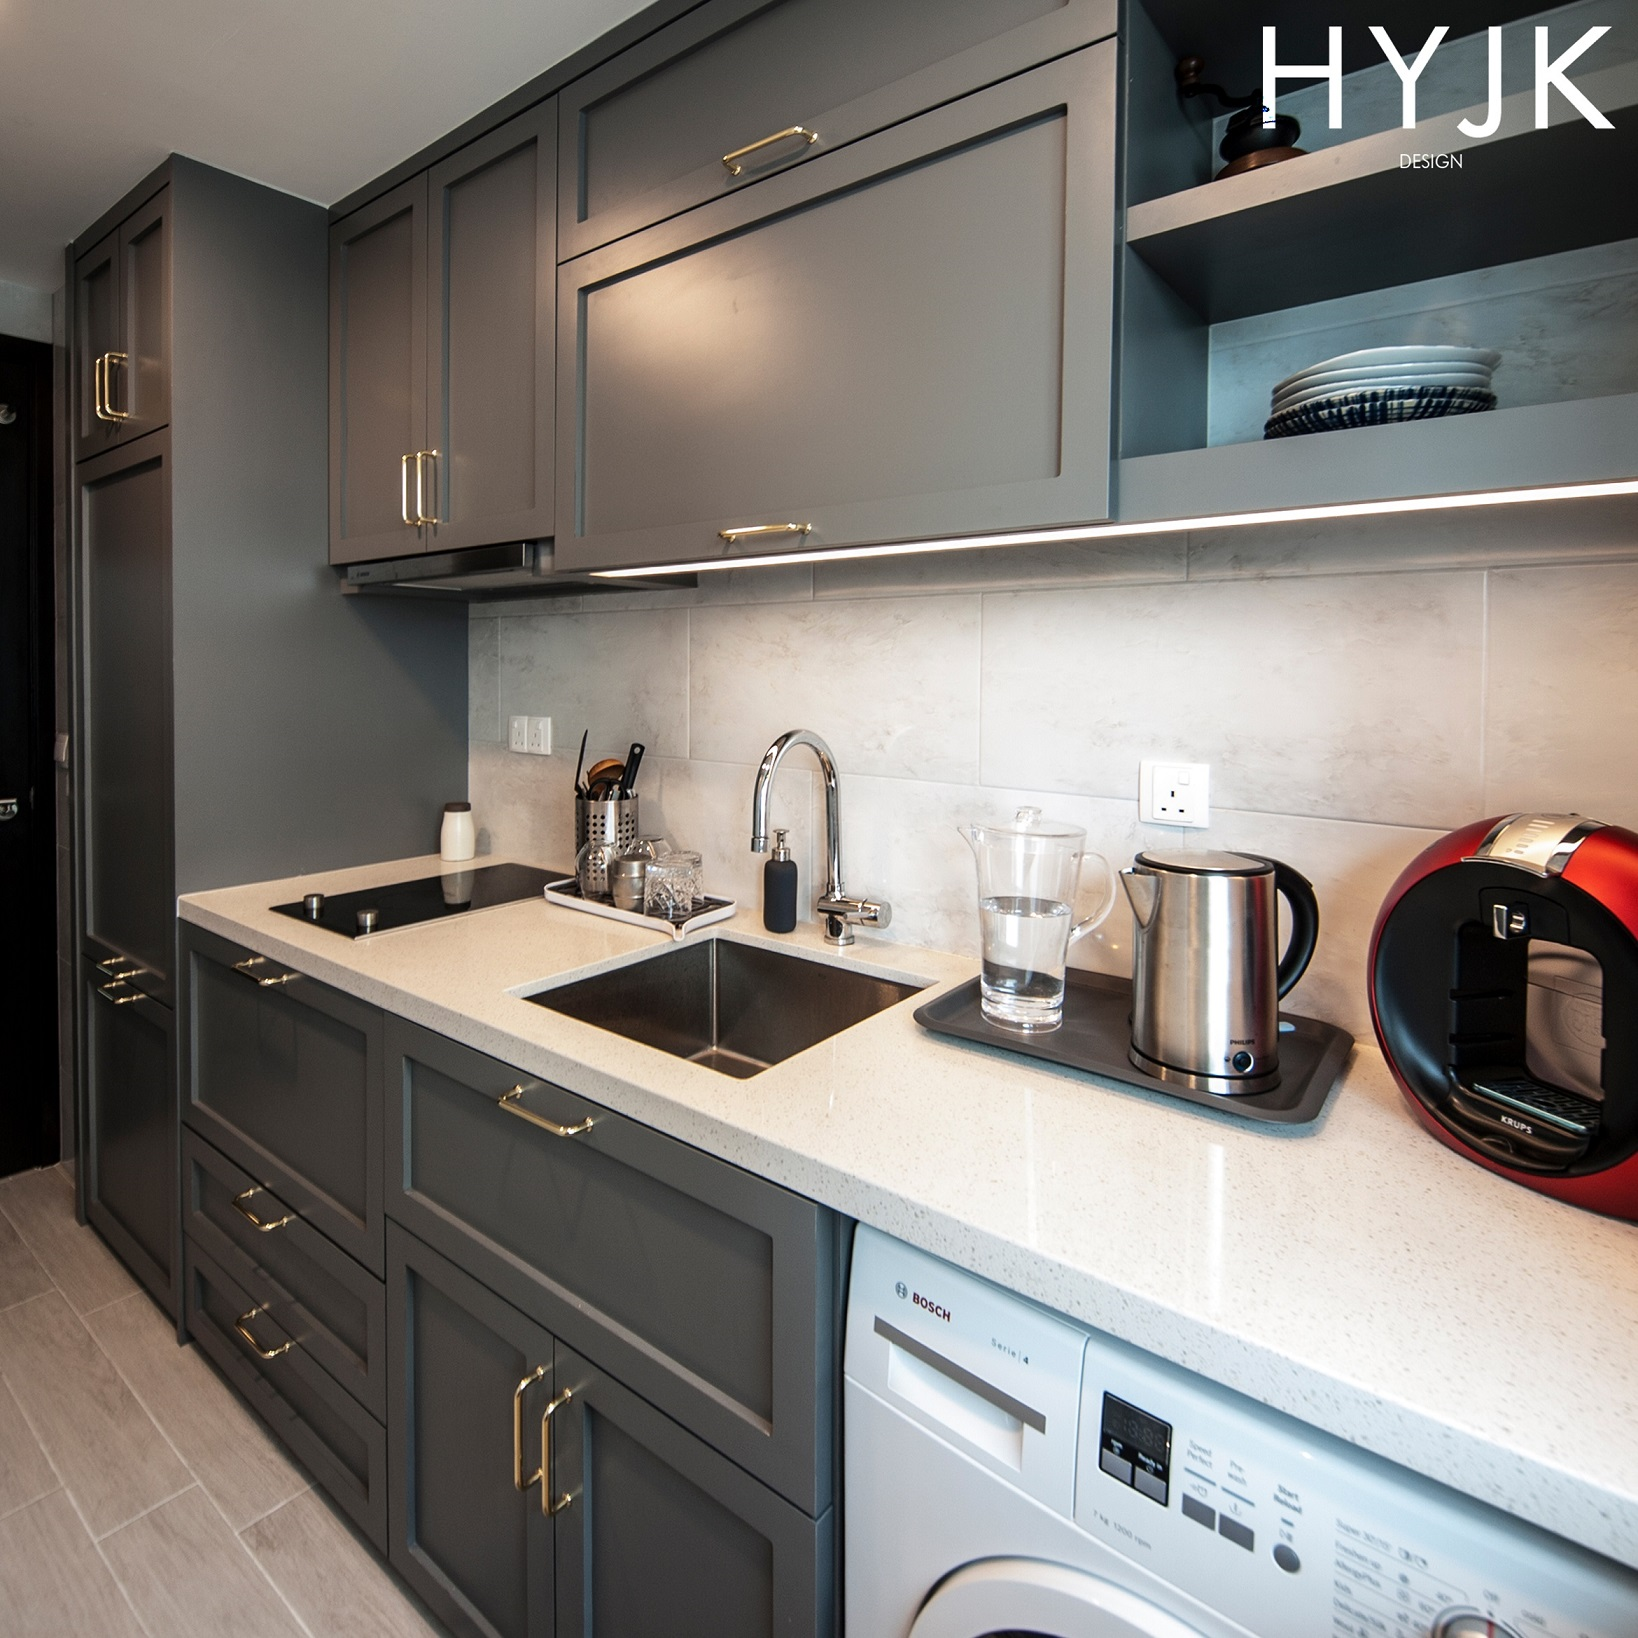 This small transitional kitchen packs a concealed refrigerator, washing machine and microwave!